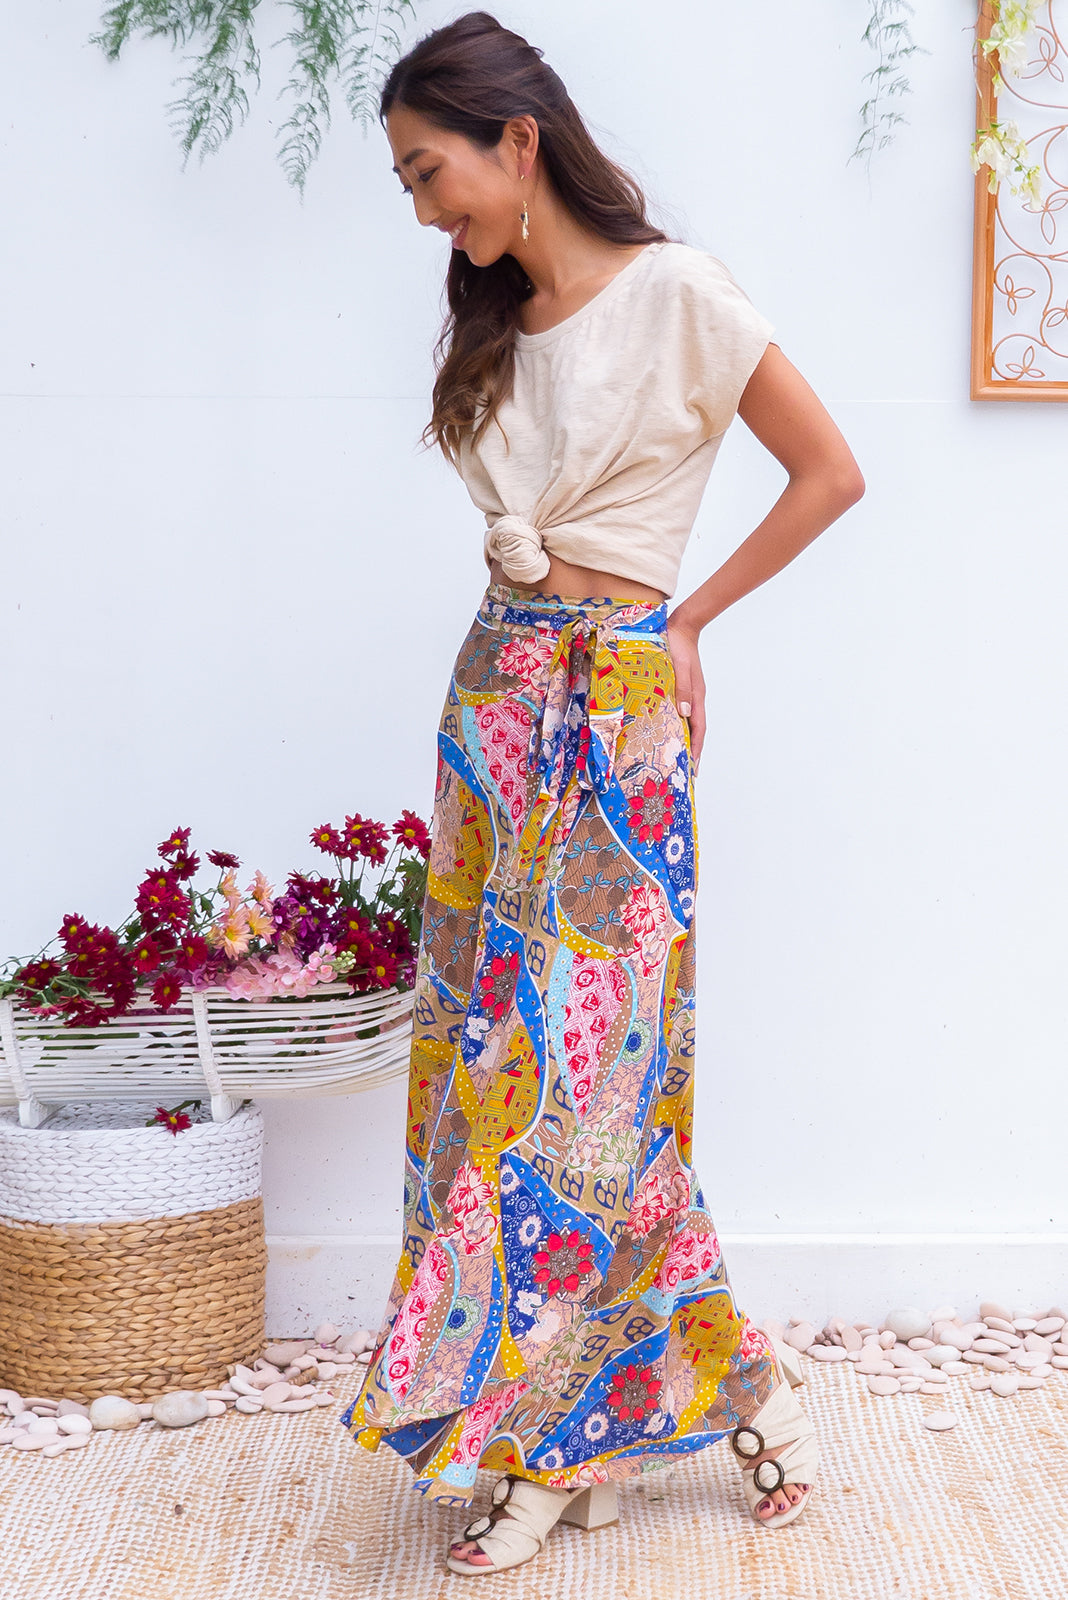 Penny LaneGypsy Patches Maxi Wrap Skirt with an adjustable wraparound waist and waterfall hemline in a soft woven rayon with a bright bohemian  patchwork print